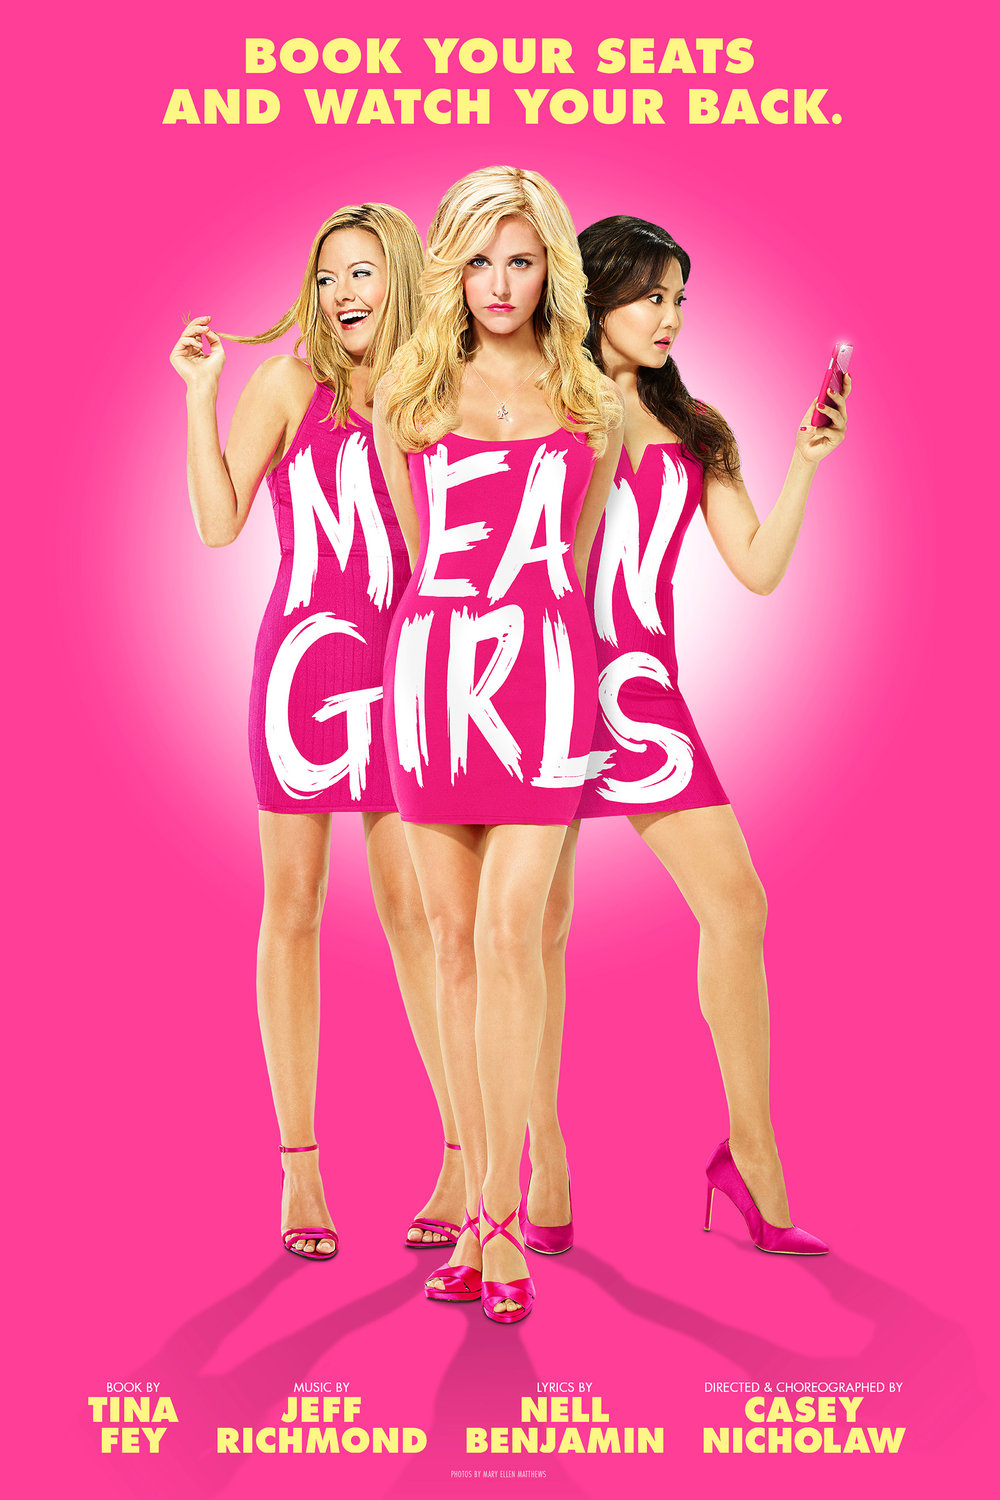 mean-girls-key-art-billing-book-your-seats_captioned.jpg